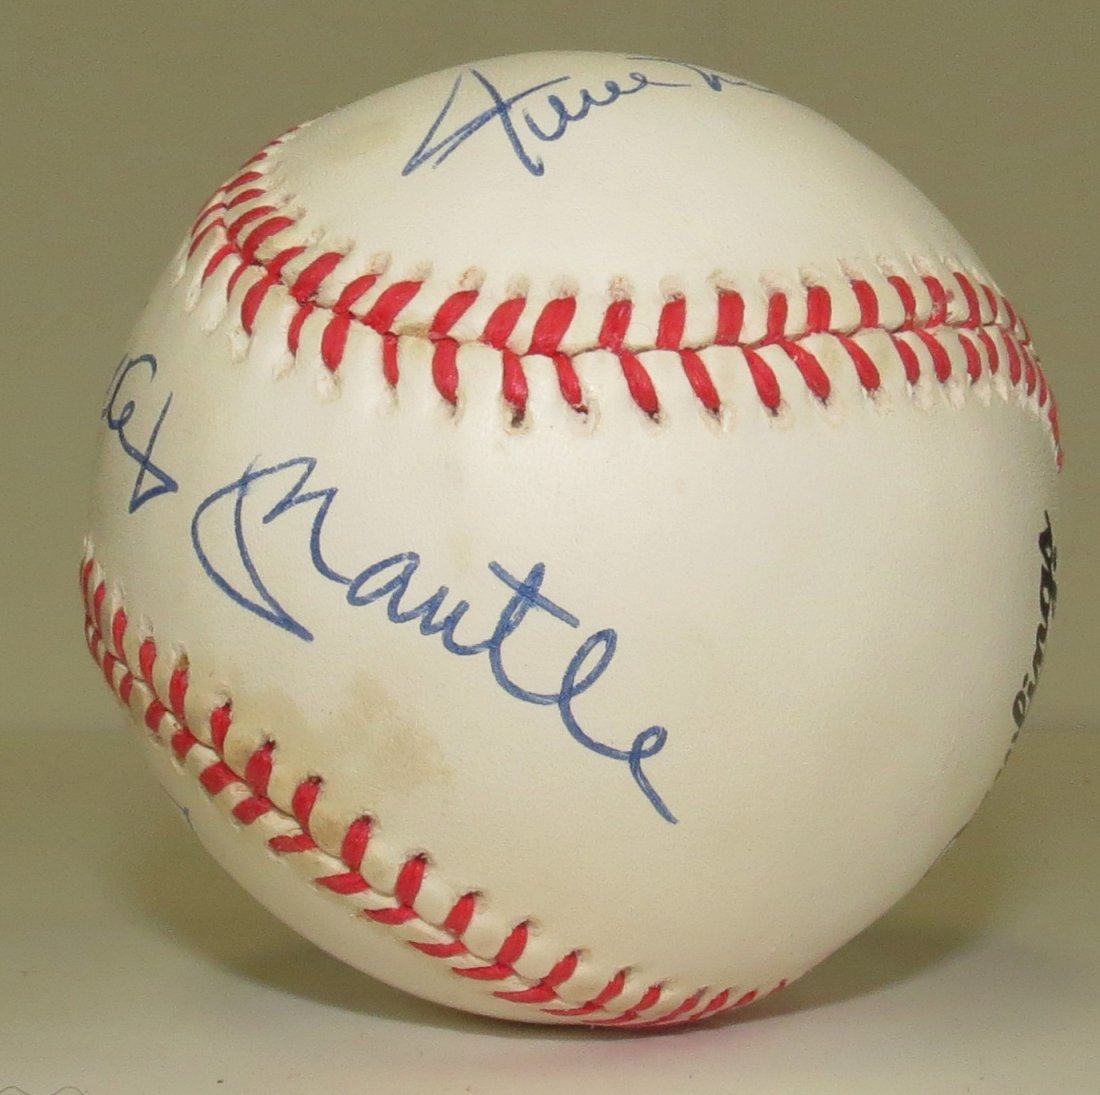 Mantle - Mays - Snider signed baseball